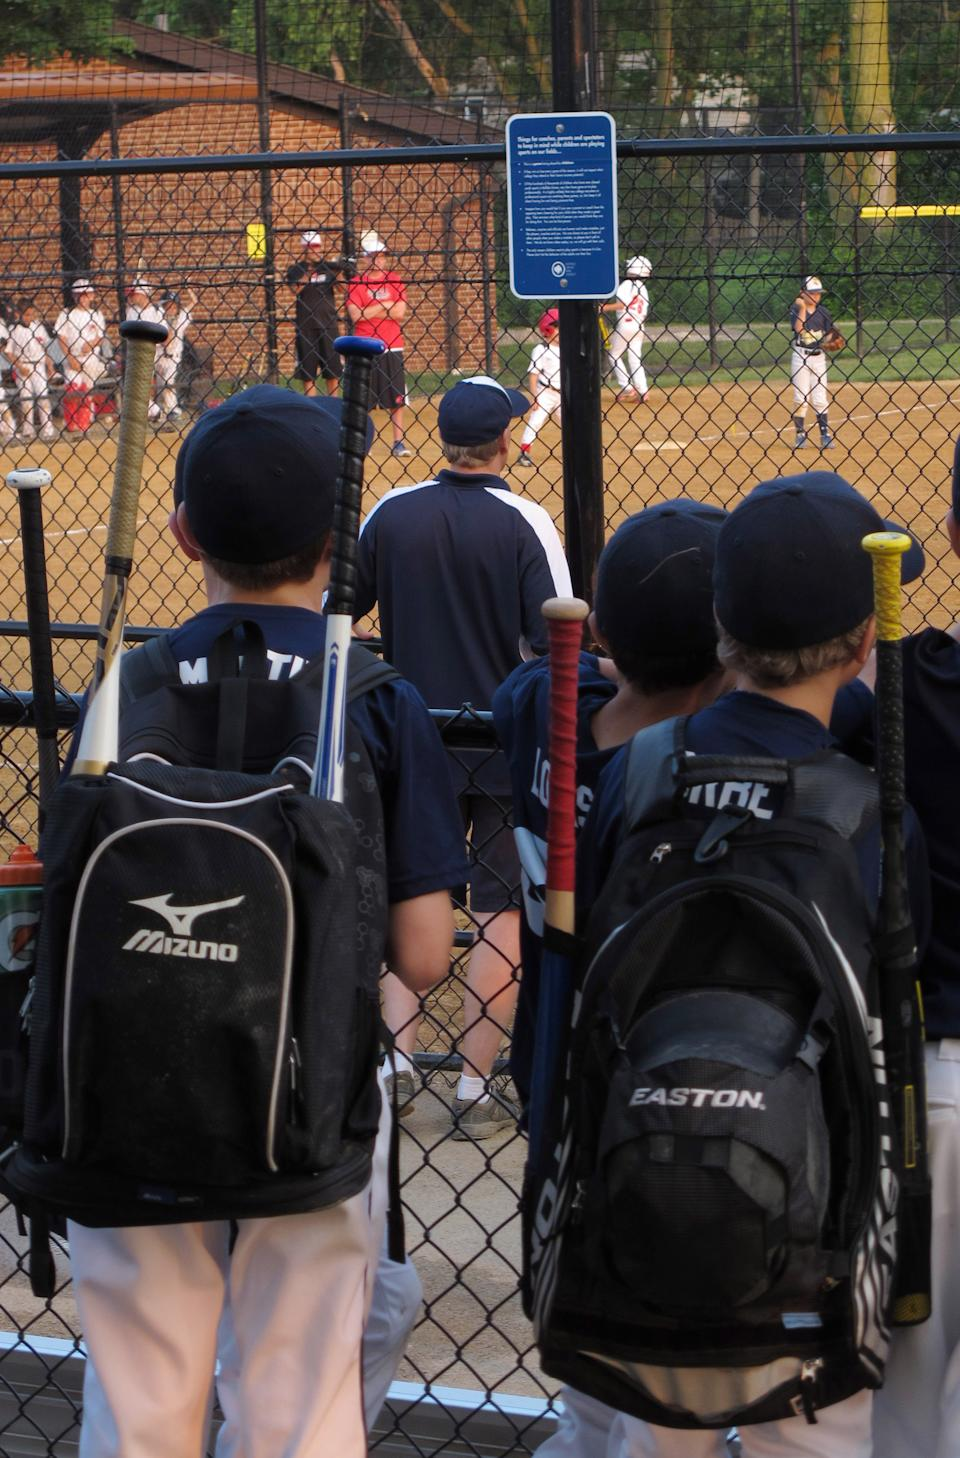 Young players wait for a game near a sign on a fence about parent behavior in Buffalo Grove, Ill. on Monday, June 10, 2013. Earlier in the month, park district officials in the Chicago suburb posted the signs asking parents to behave and keep the games in perspective. (AP Photo/Martha Irvine)